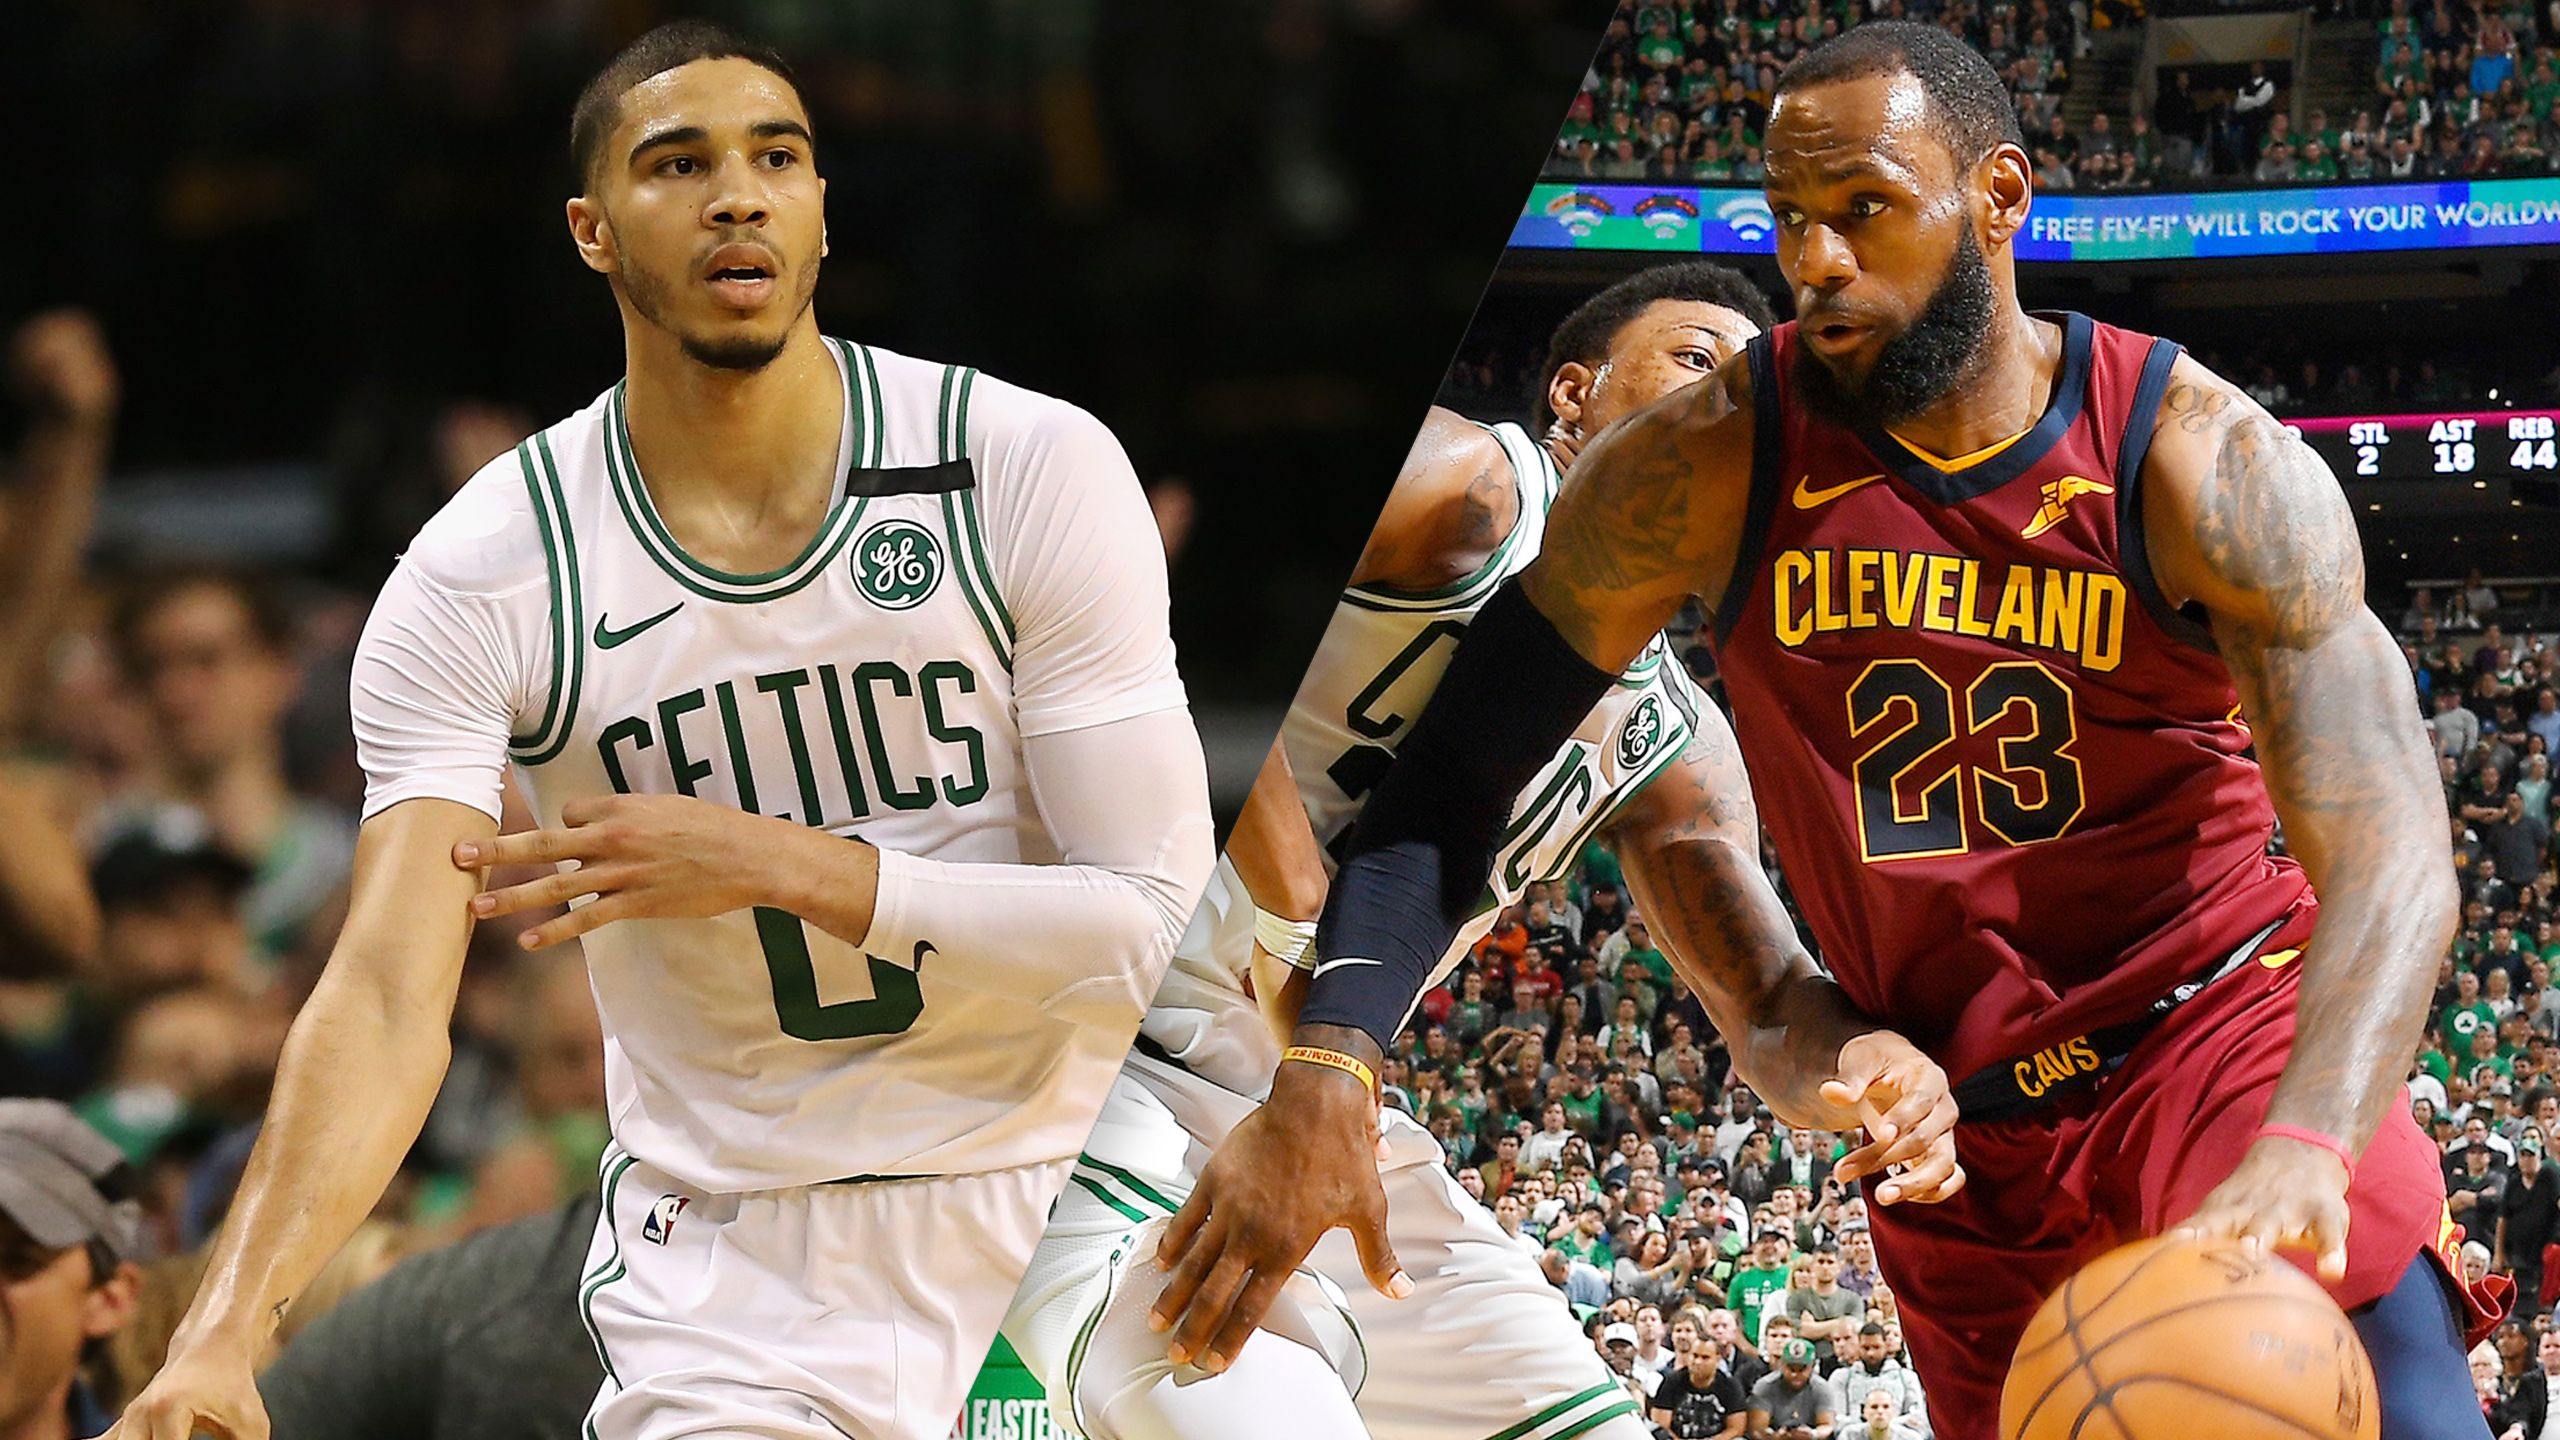 Boston Celtics vs. Cleveland Cavaliers (Conference Finals Game 3)